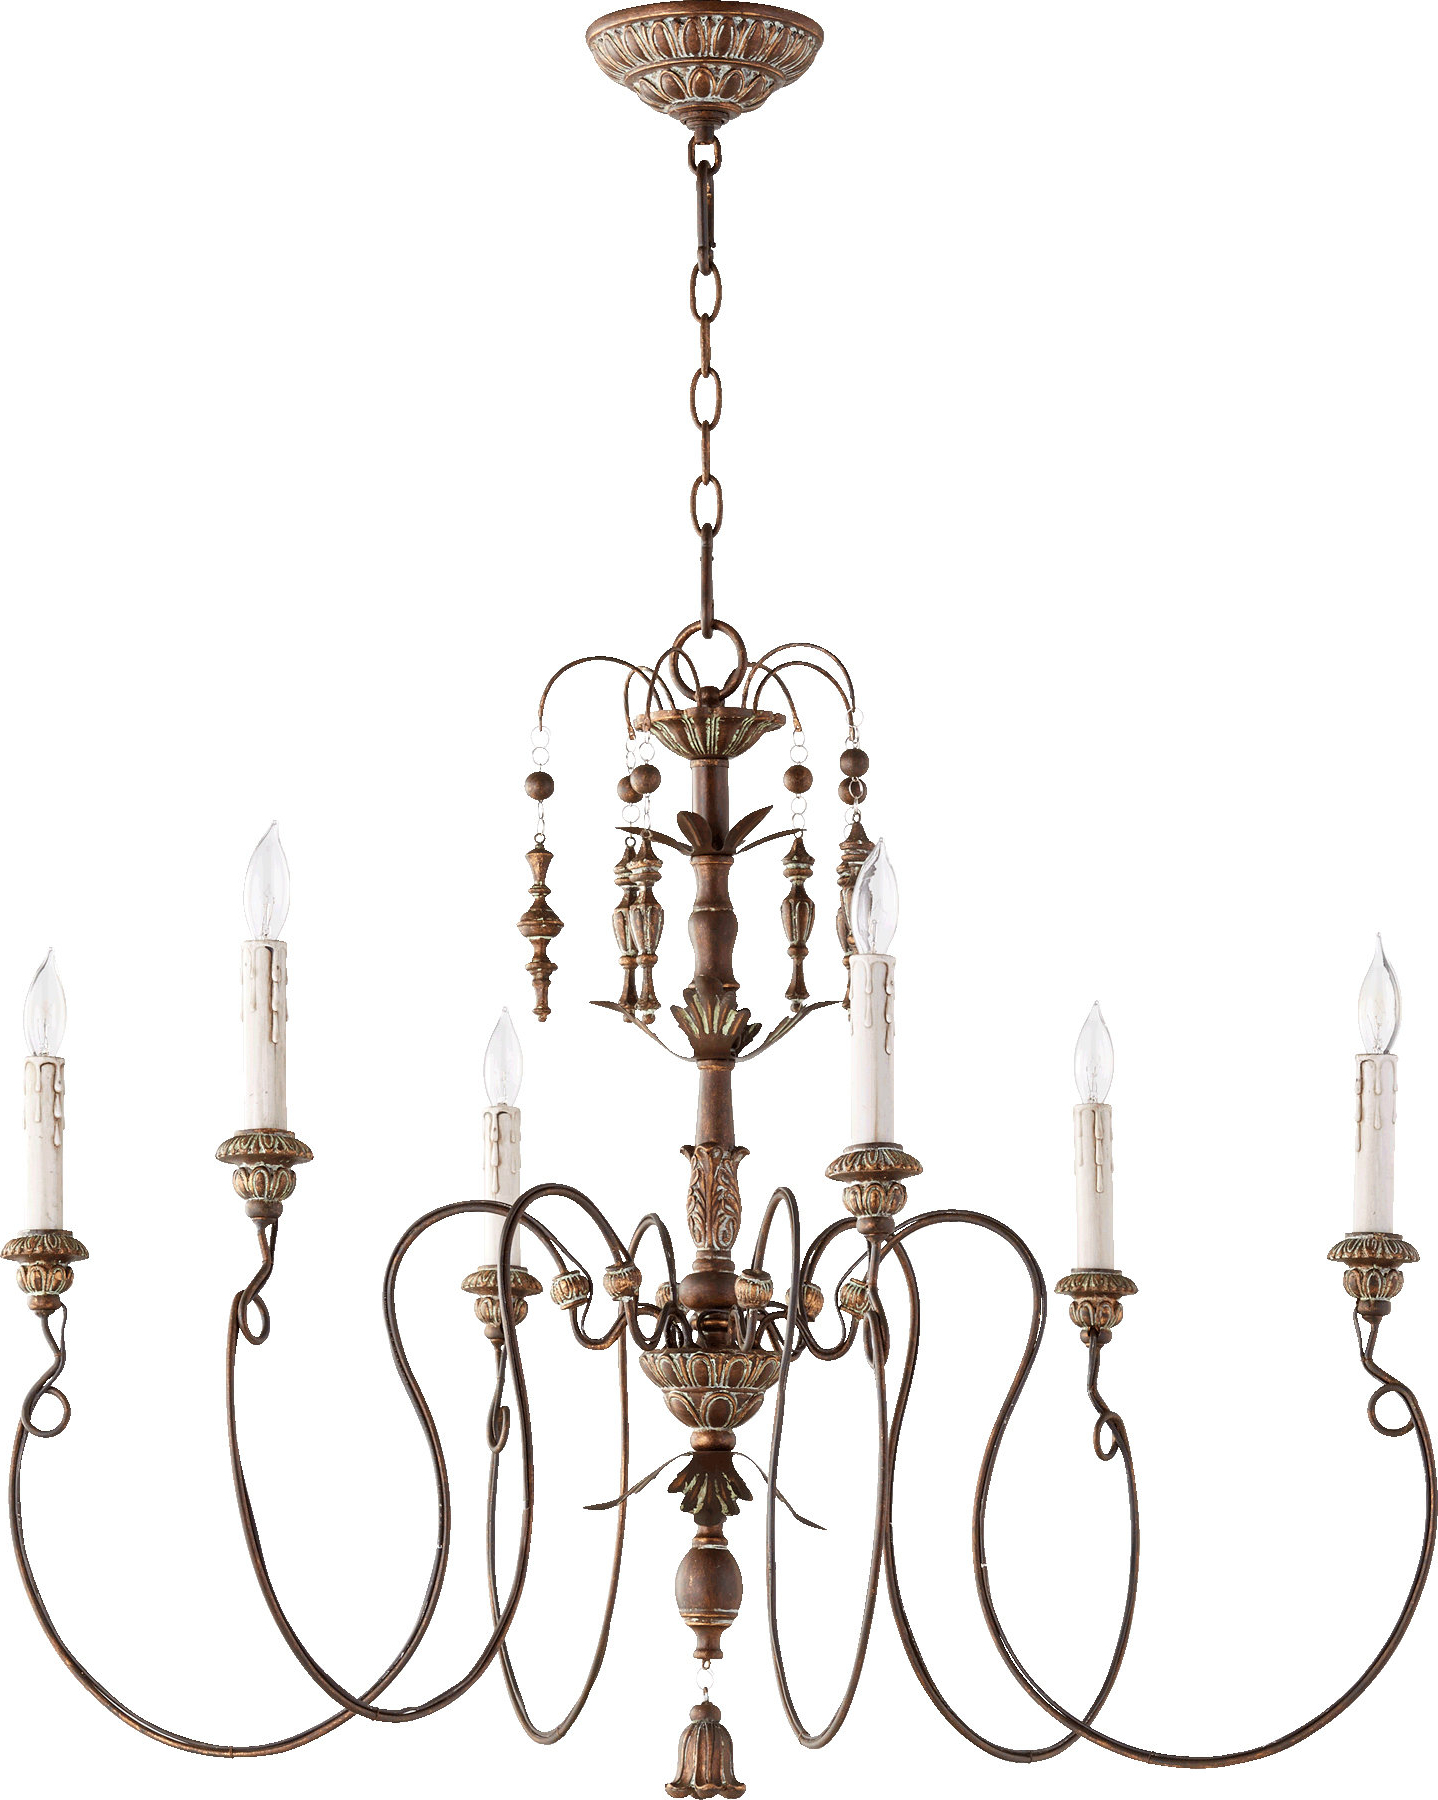 Paladino 6 Light Chandelier Intended For Famous Paladino 6 Light Chandeliers (View 3 of 20)